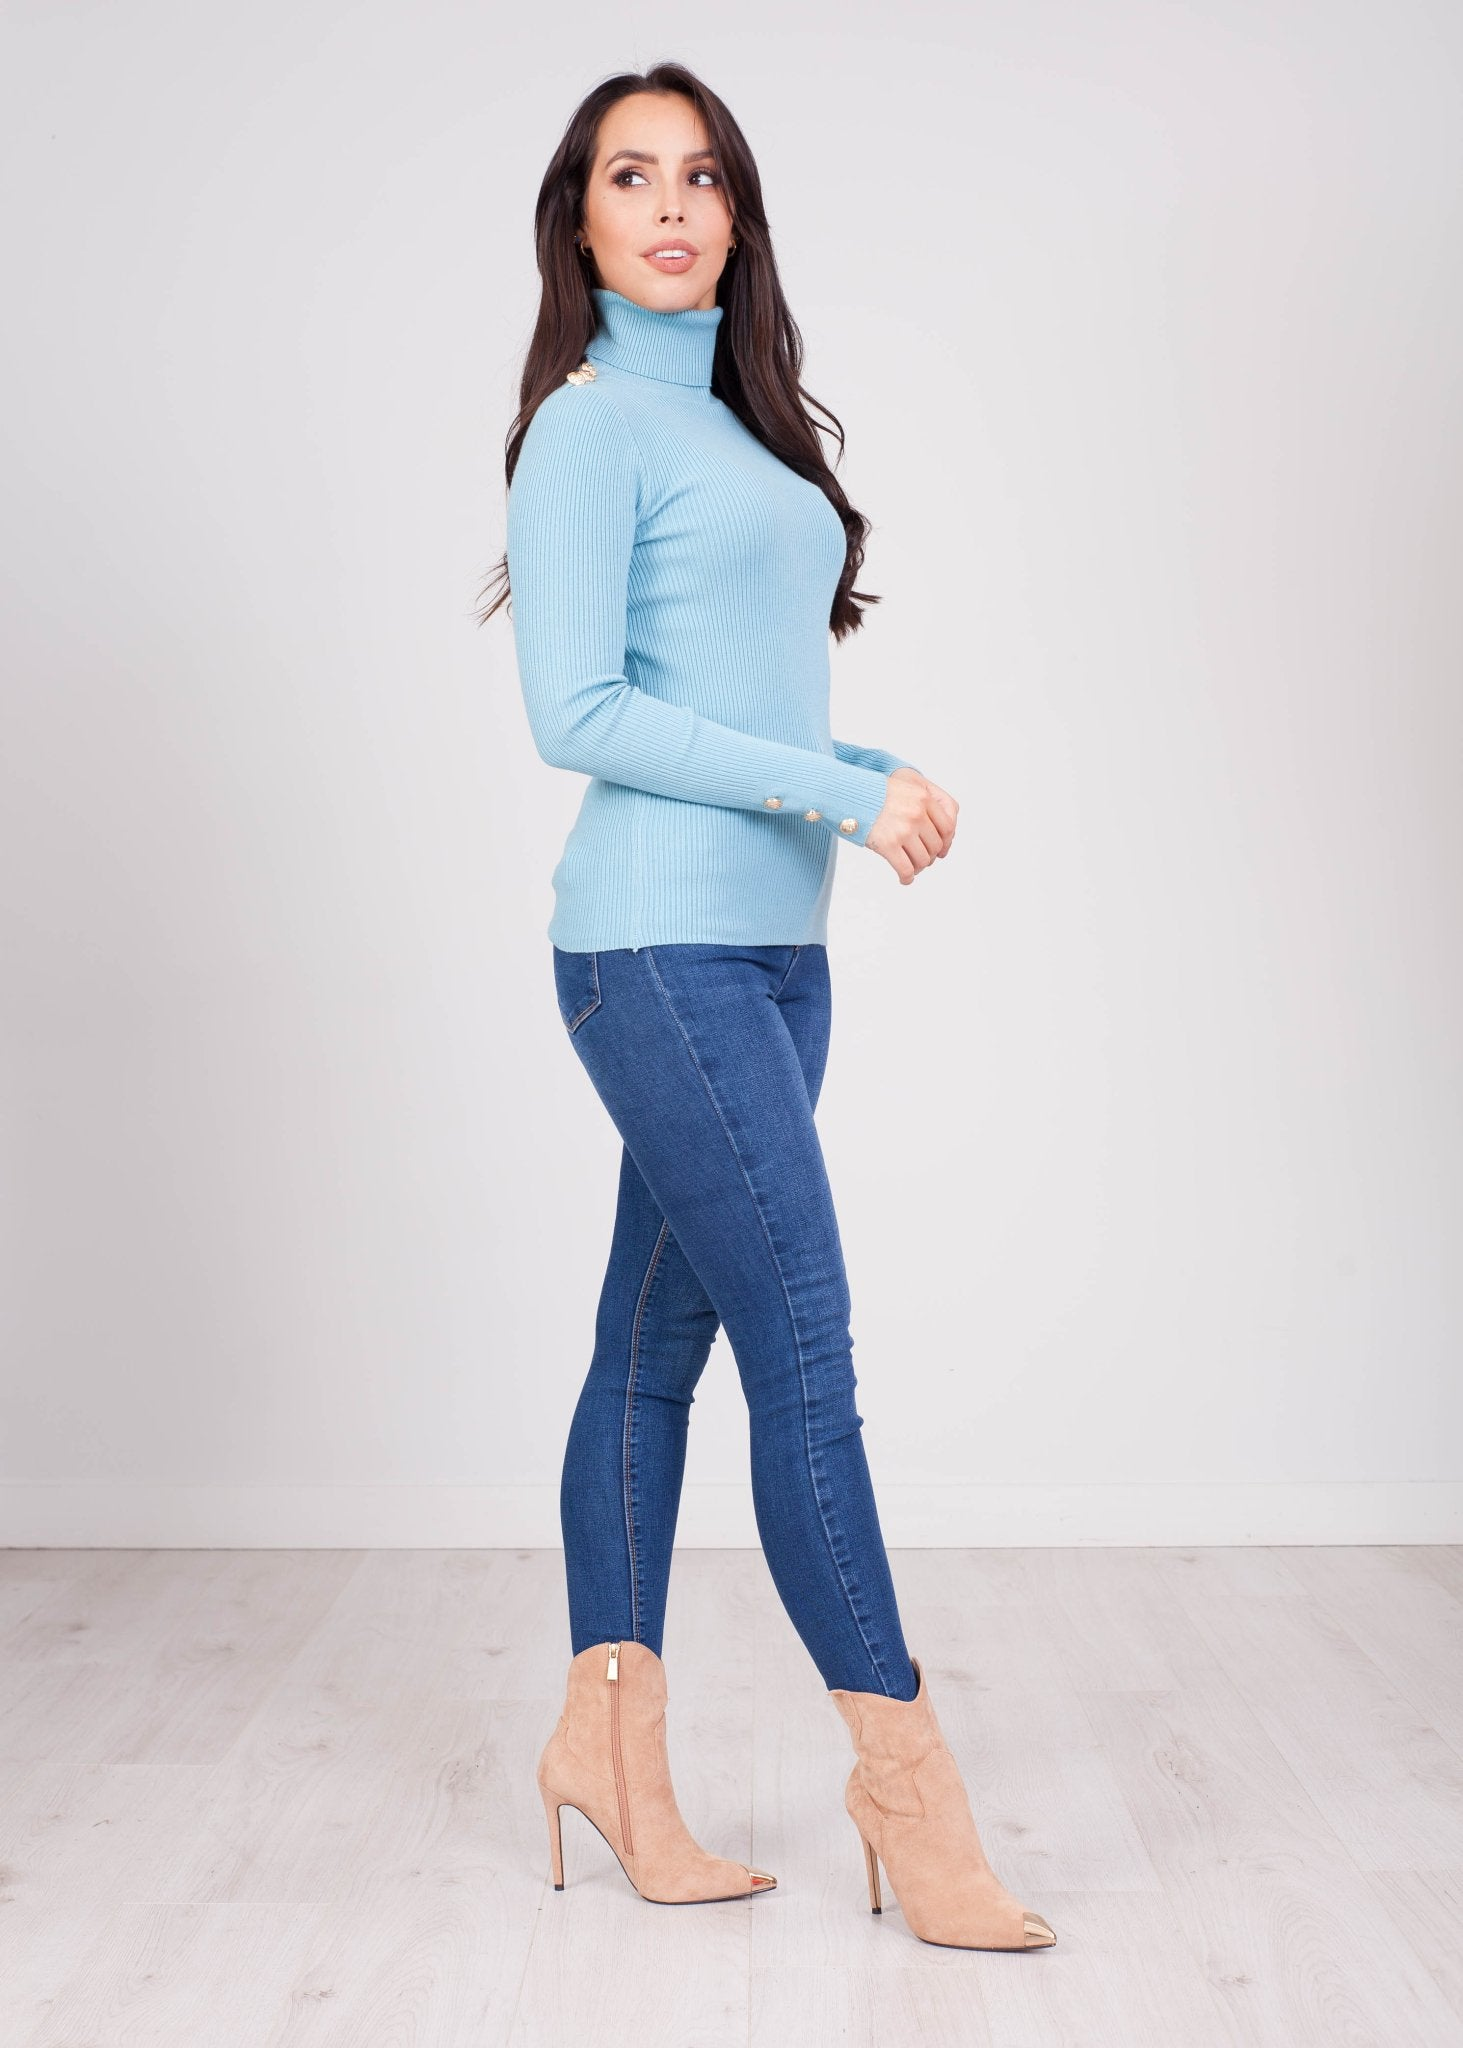 Emilia Aqua Polo Neck Top - The Walk in Wardrobe